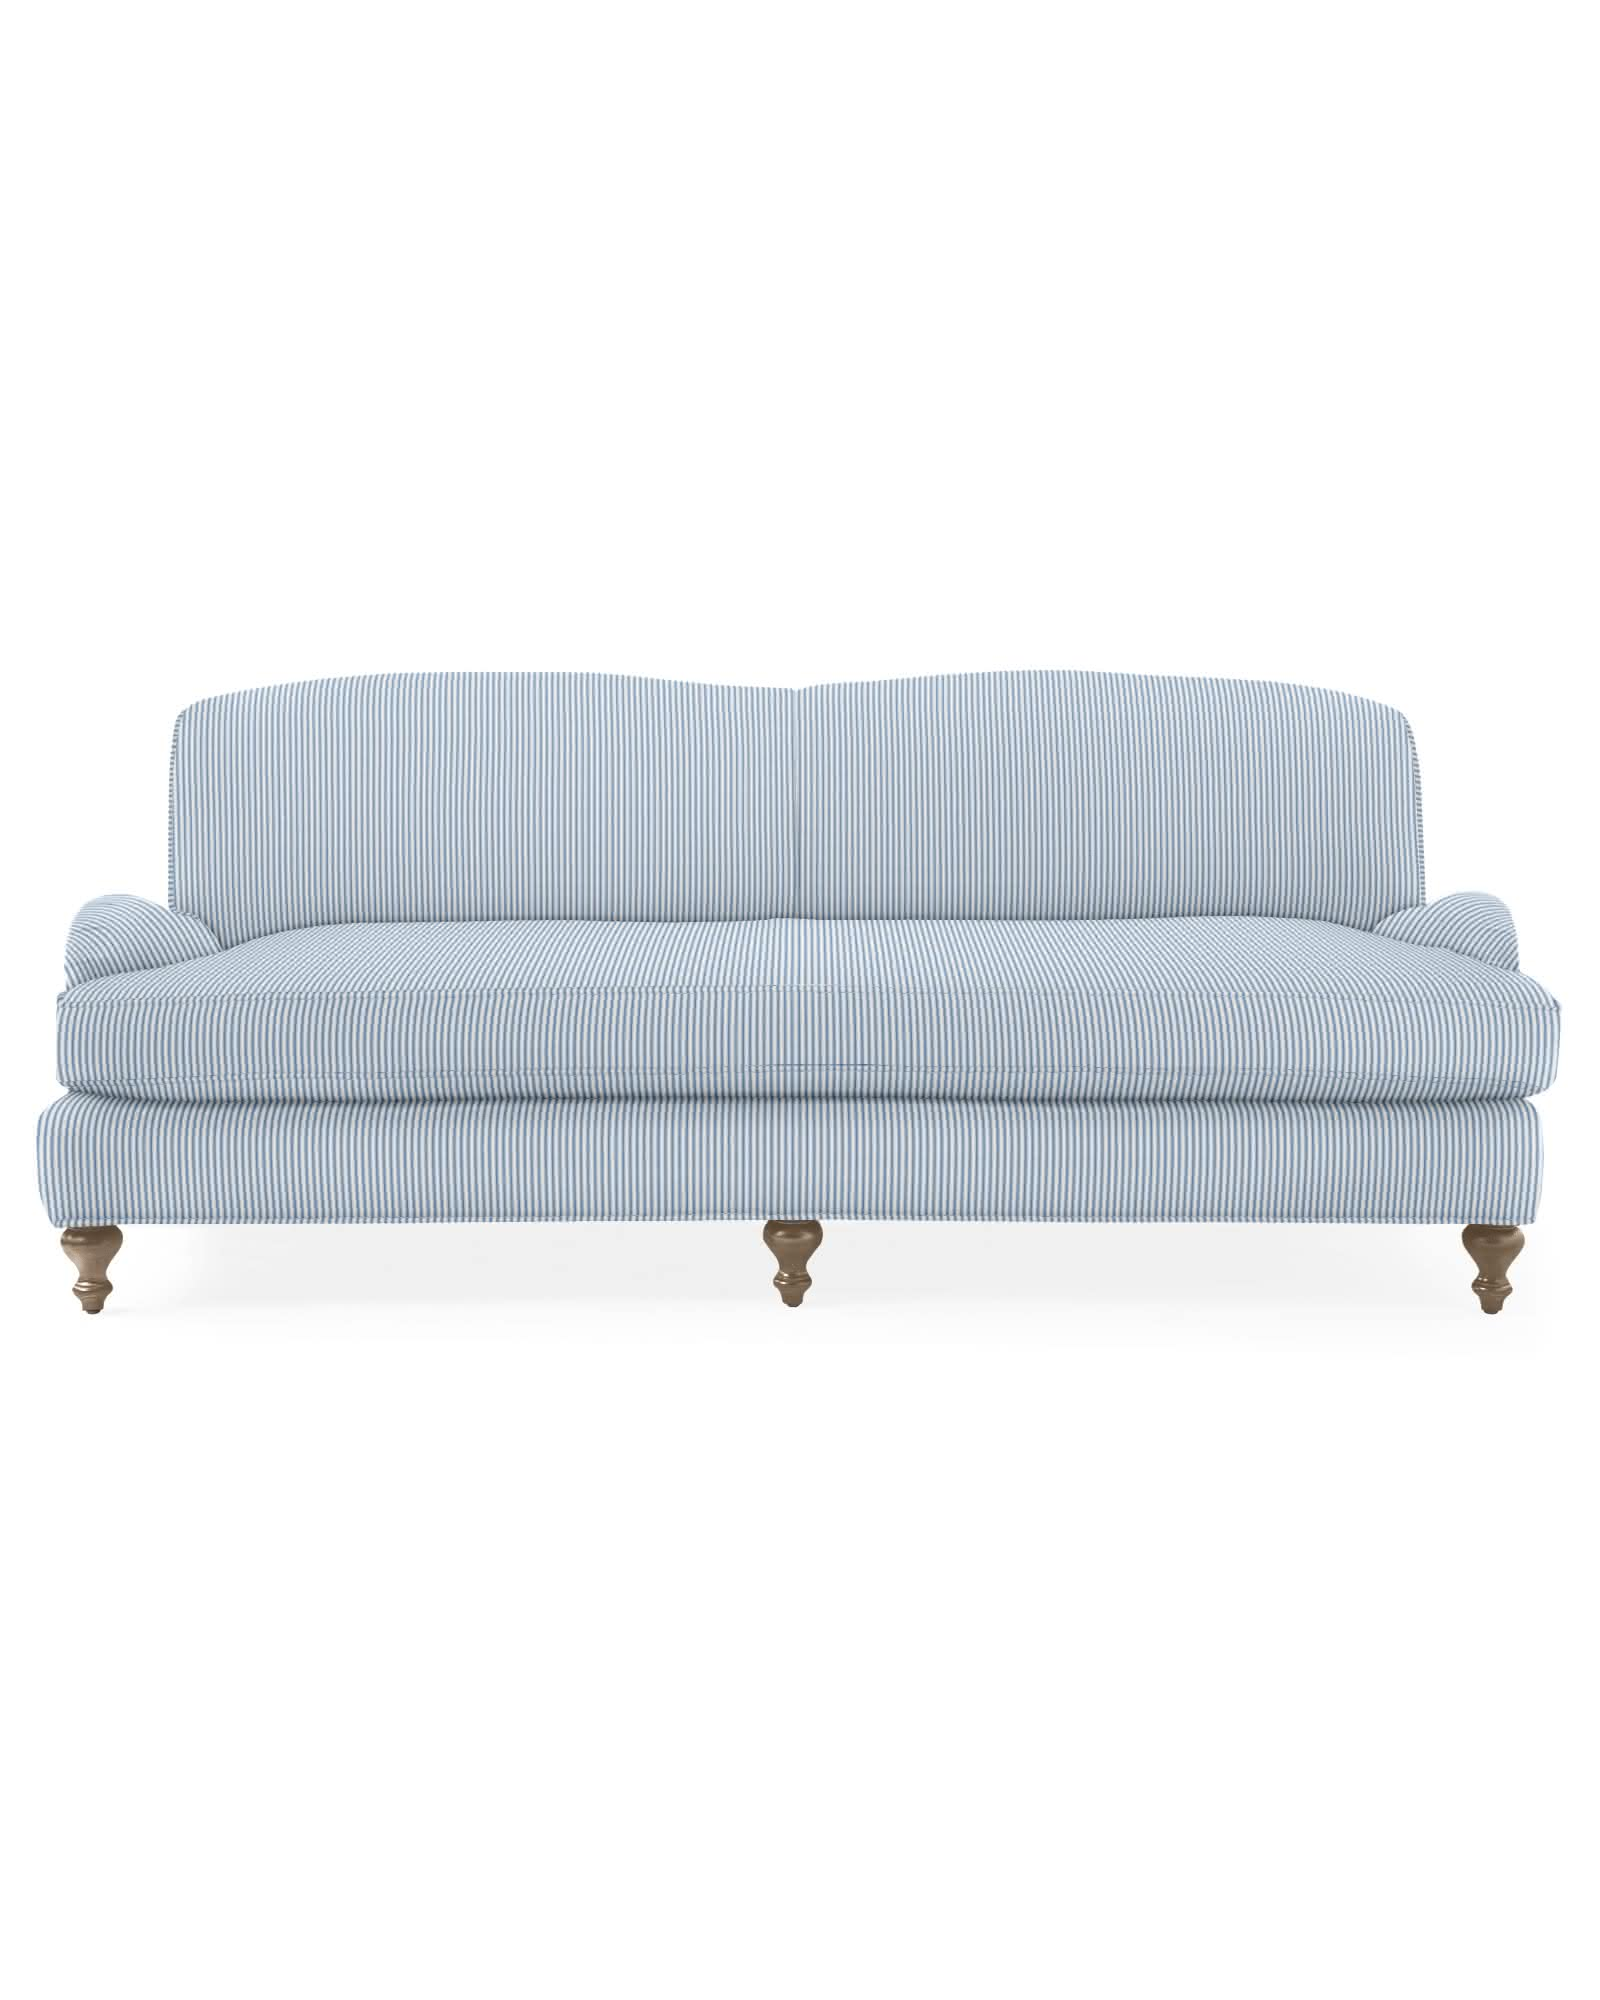 Miramar Sofa with Bench Seat - Perennials® Pinstripe,